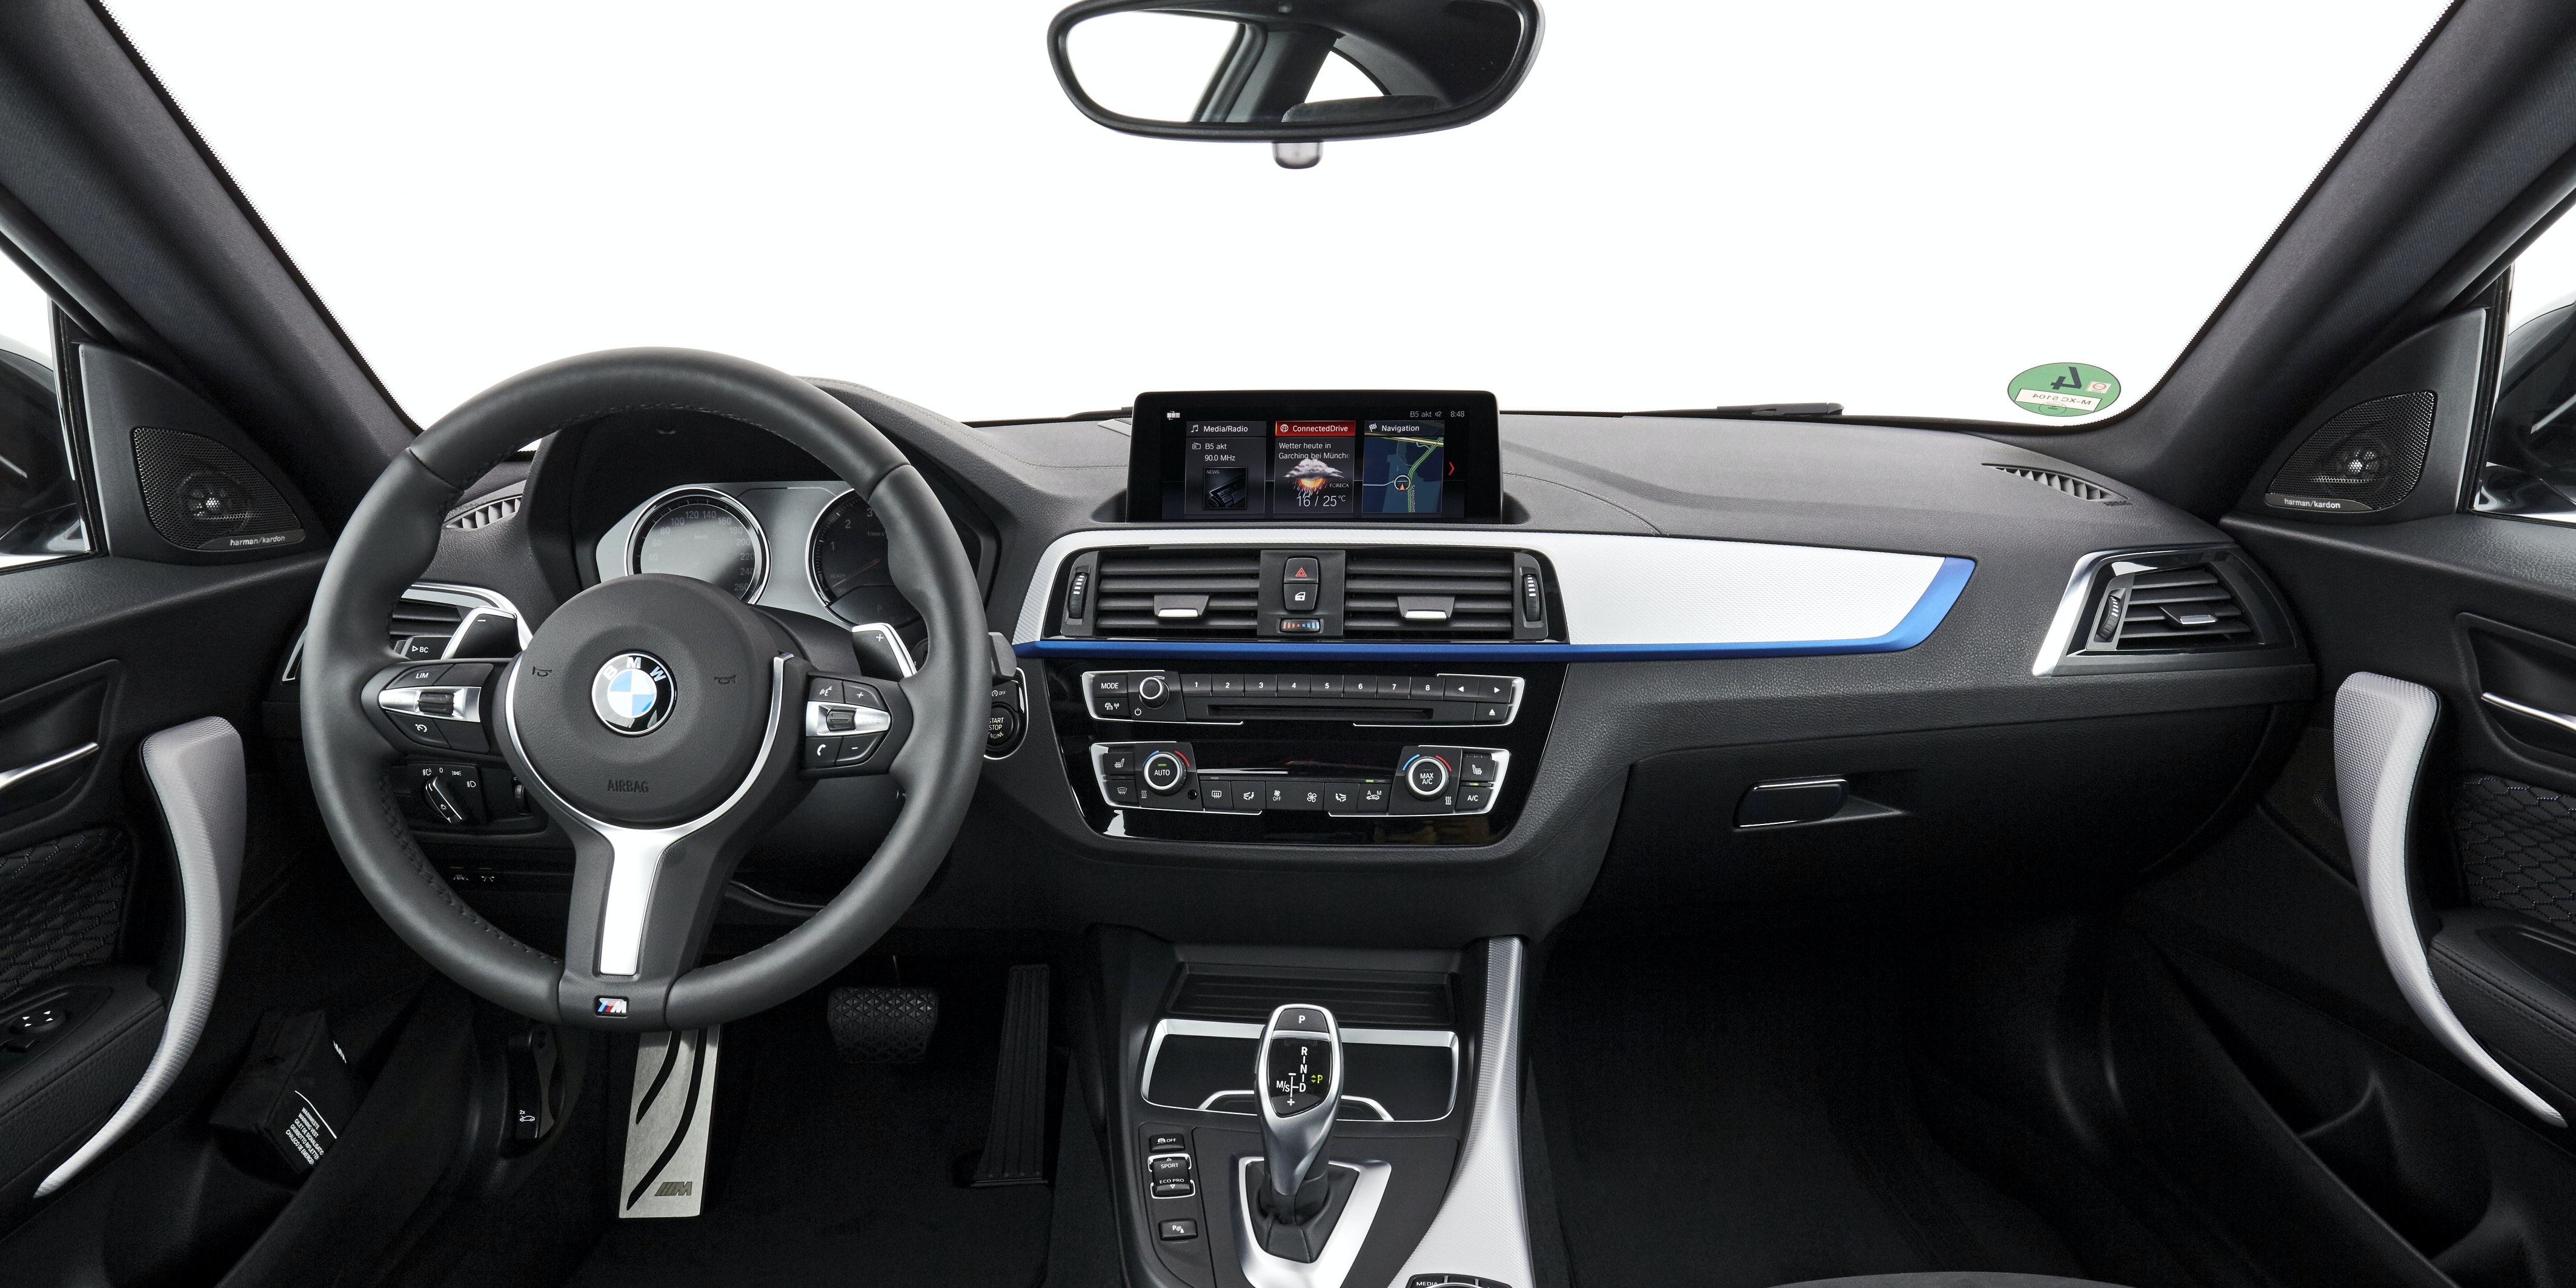 The dashboard isn't that exciting, but the seating position feels sporty